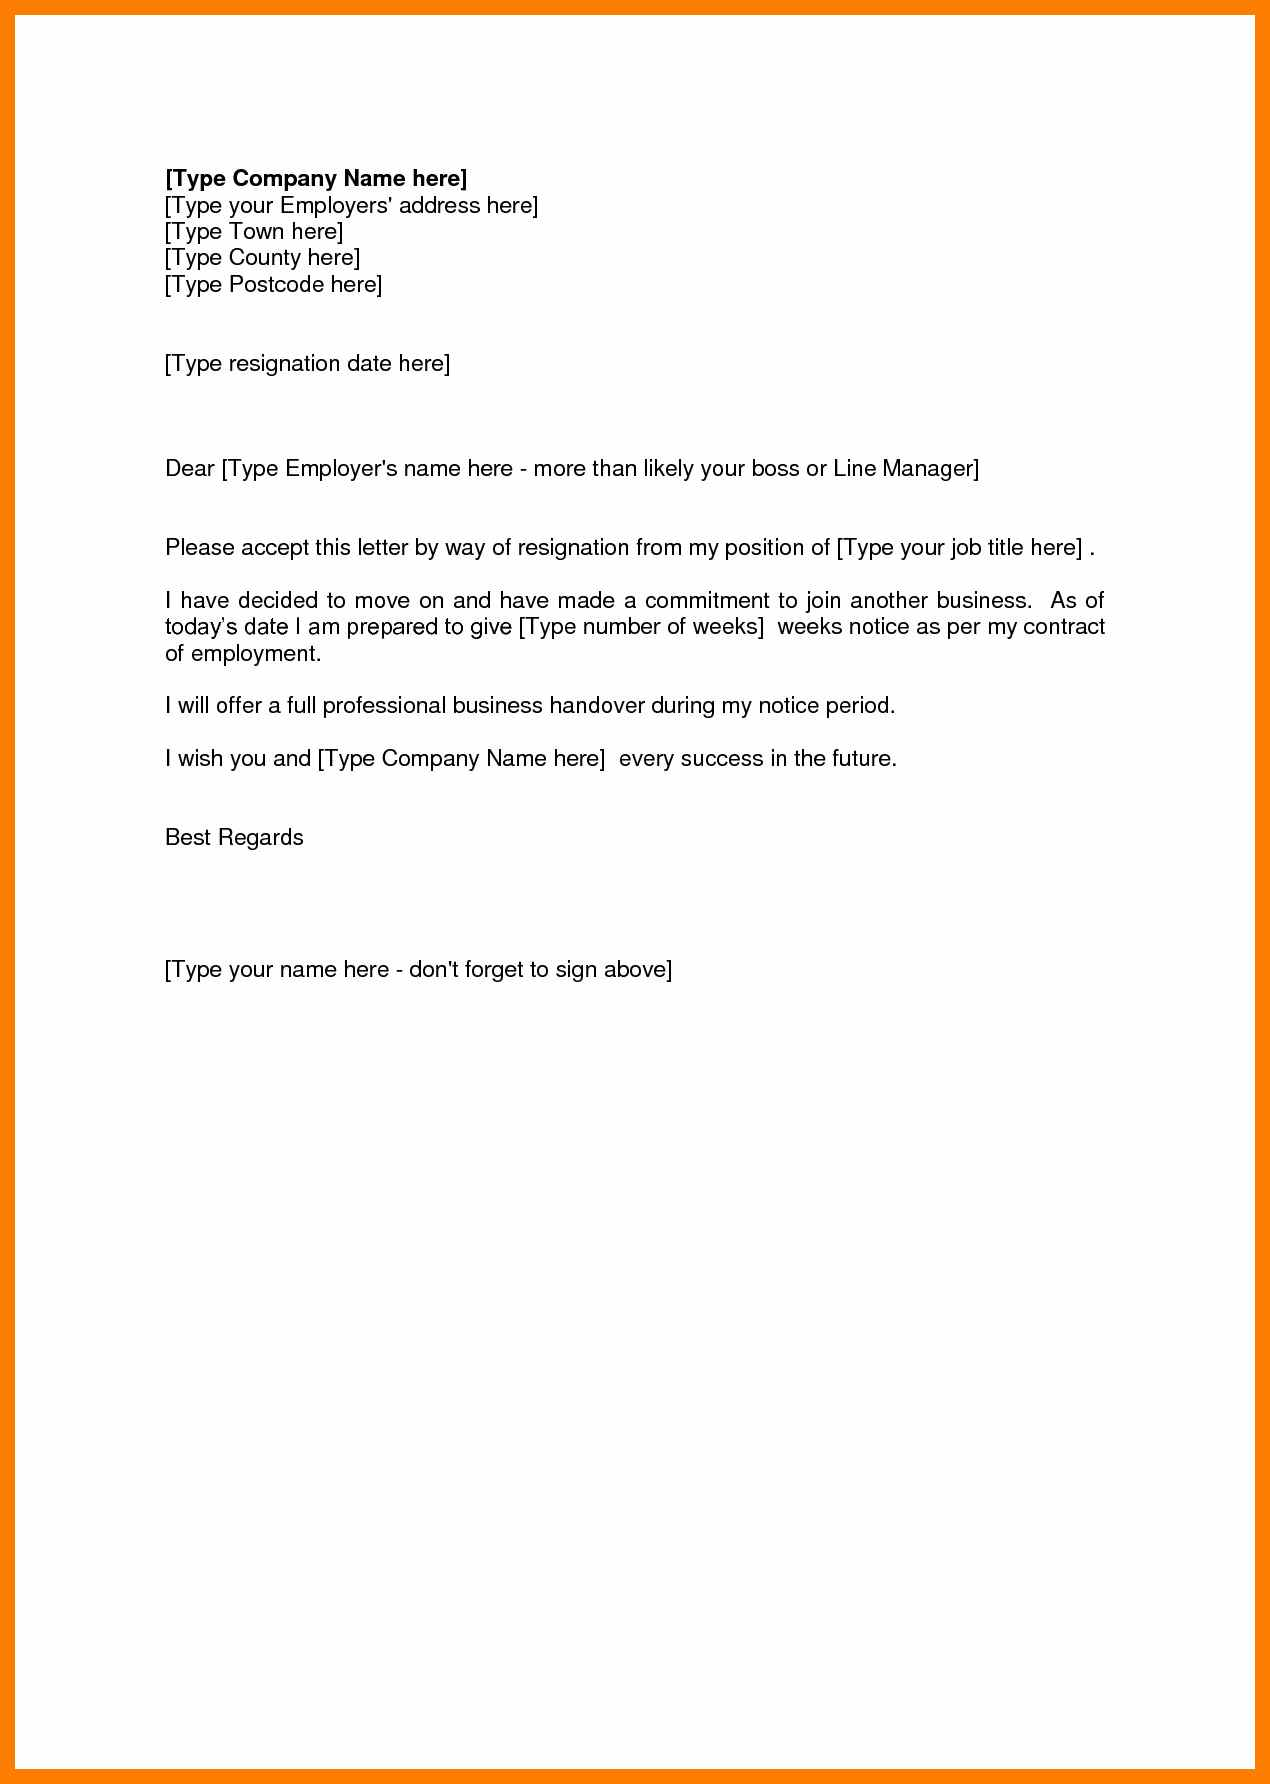 Sample resignation letter template collection letter templates sample resignation letter template sample notice resignation good resume format professional letter spiritdancerdesigns Choice Image